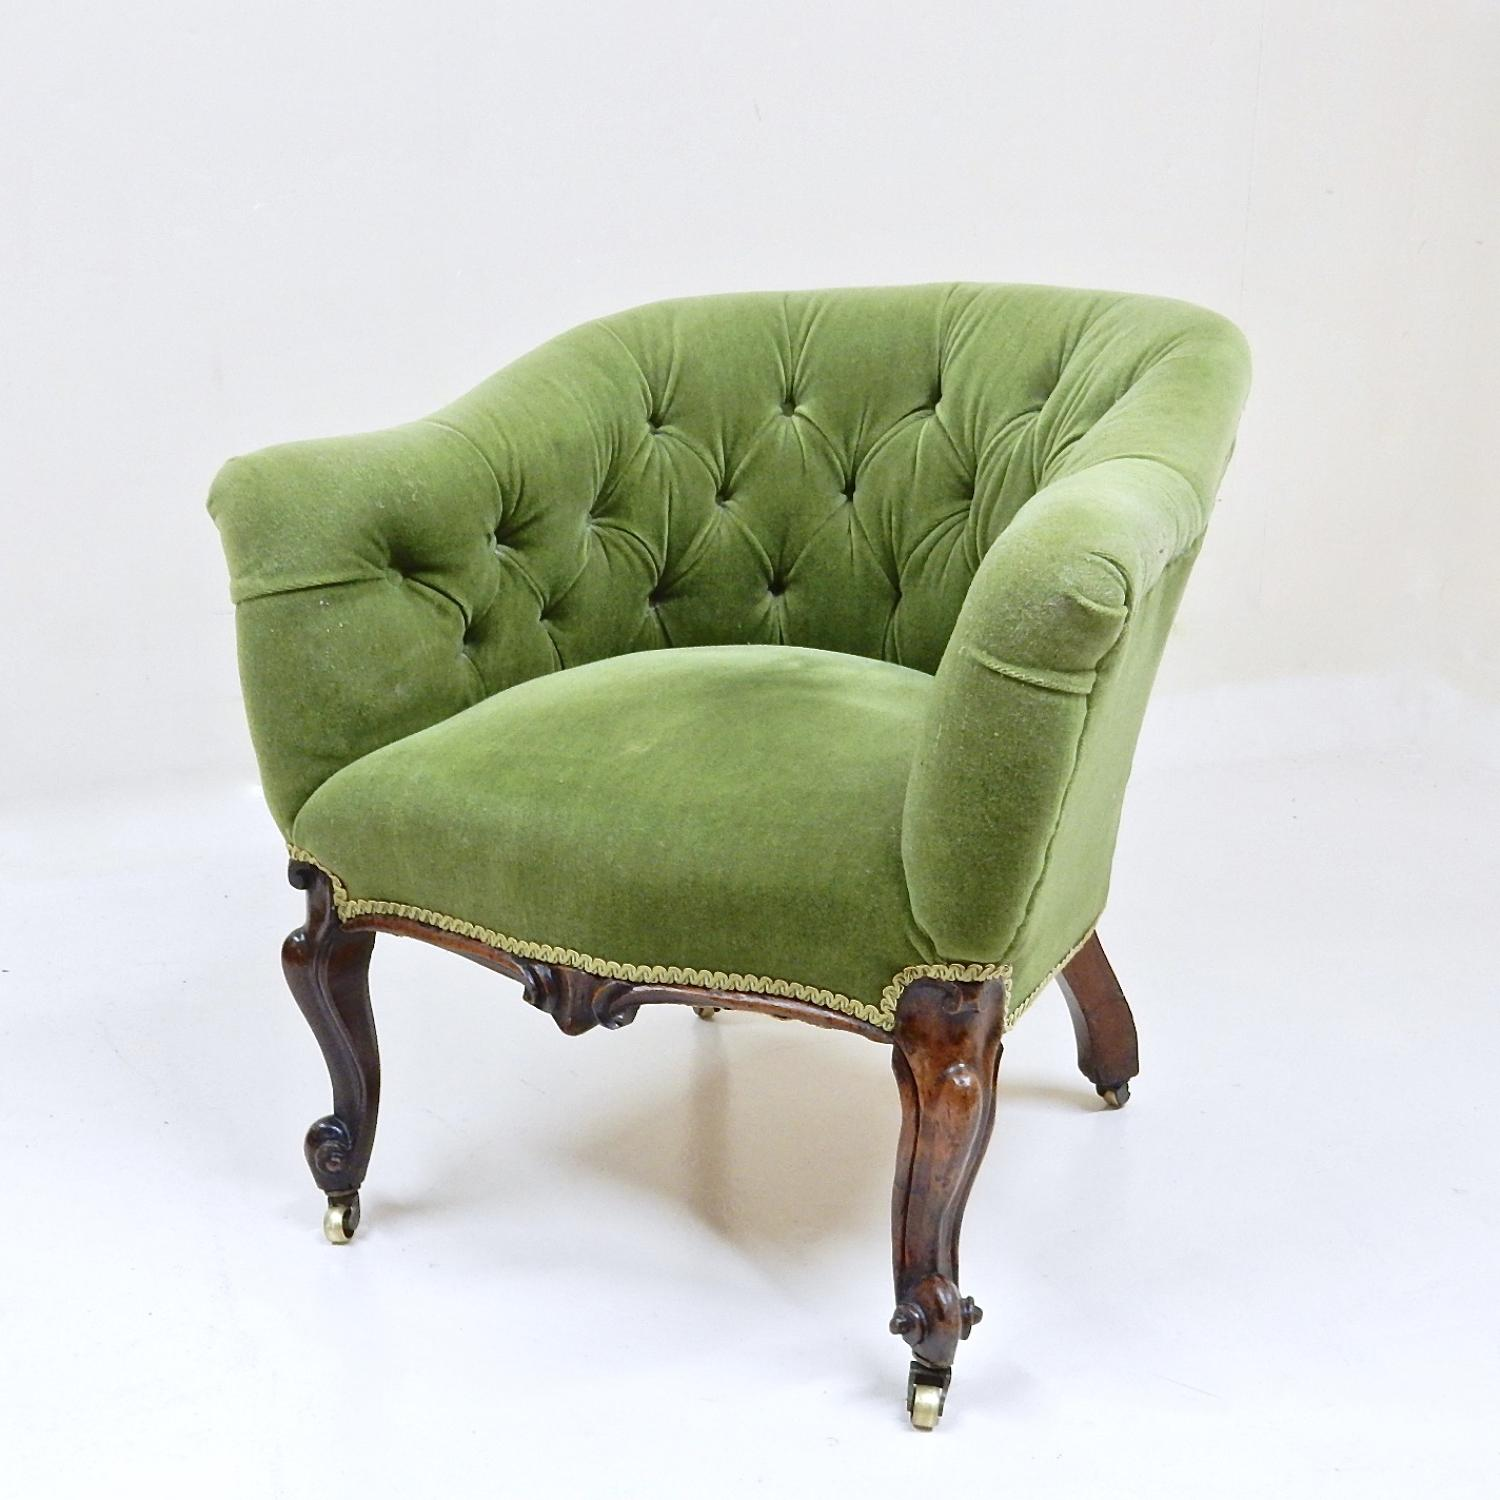 Victorian Tub Chair in Seating and Upholstery